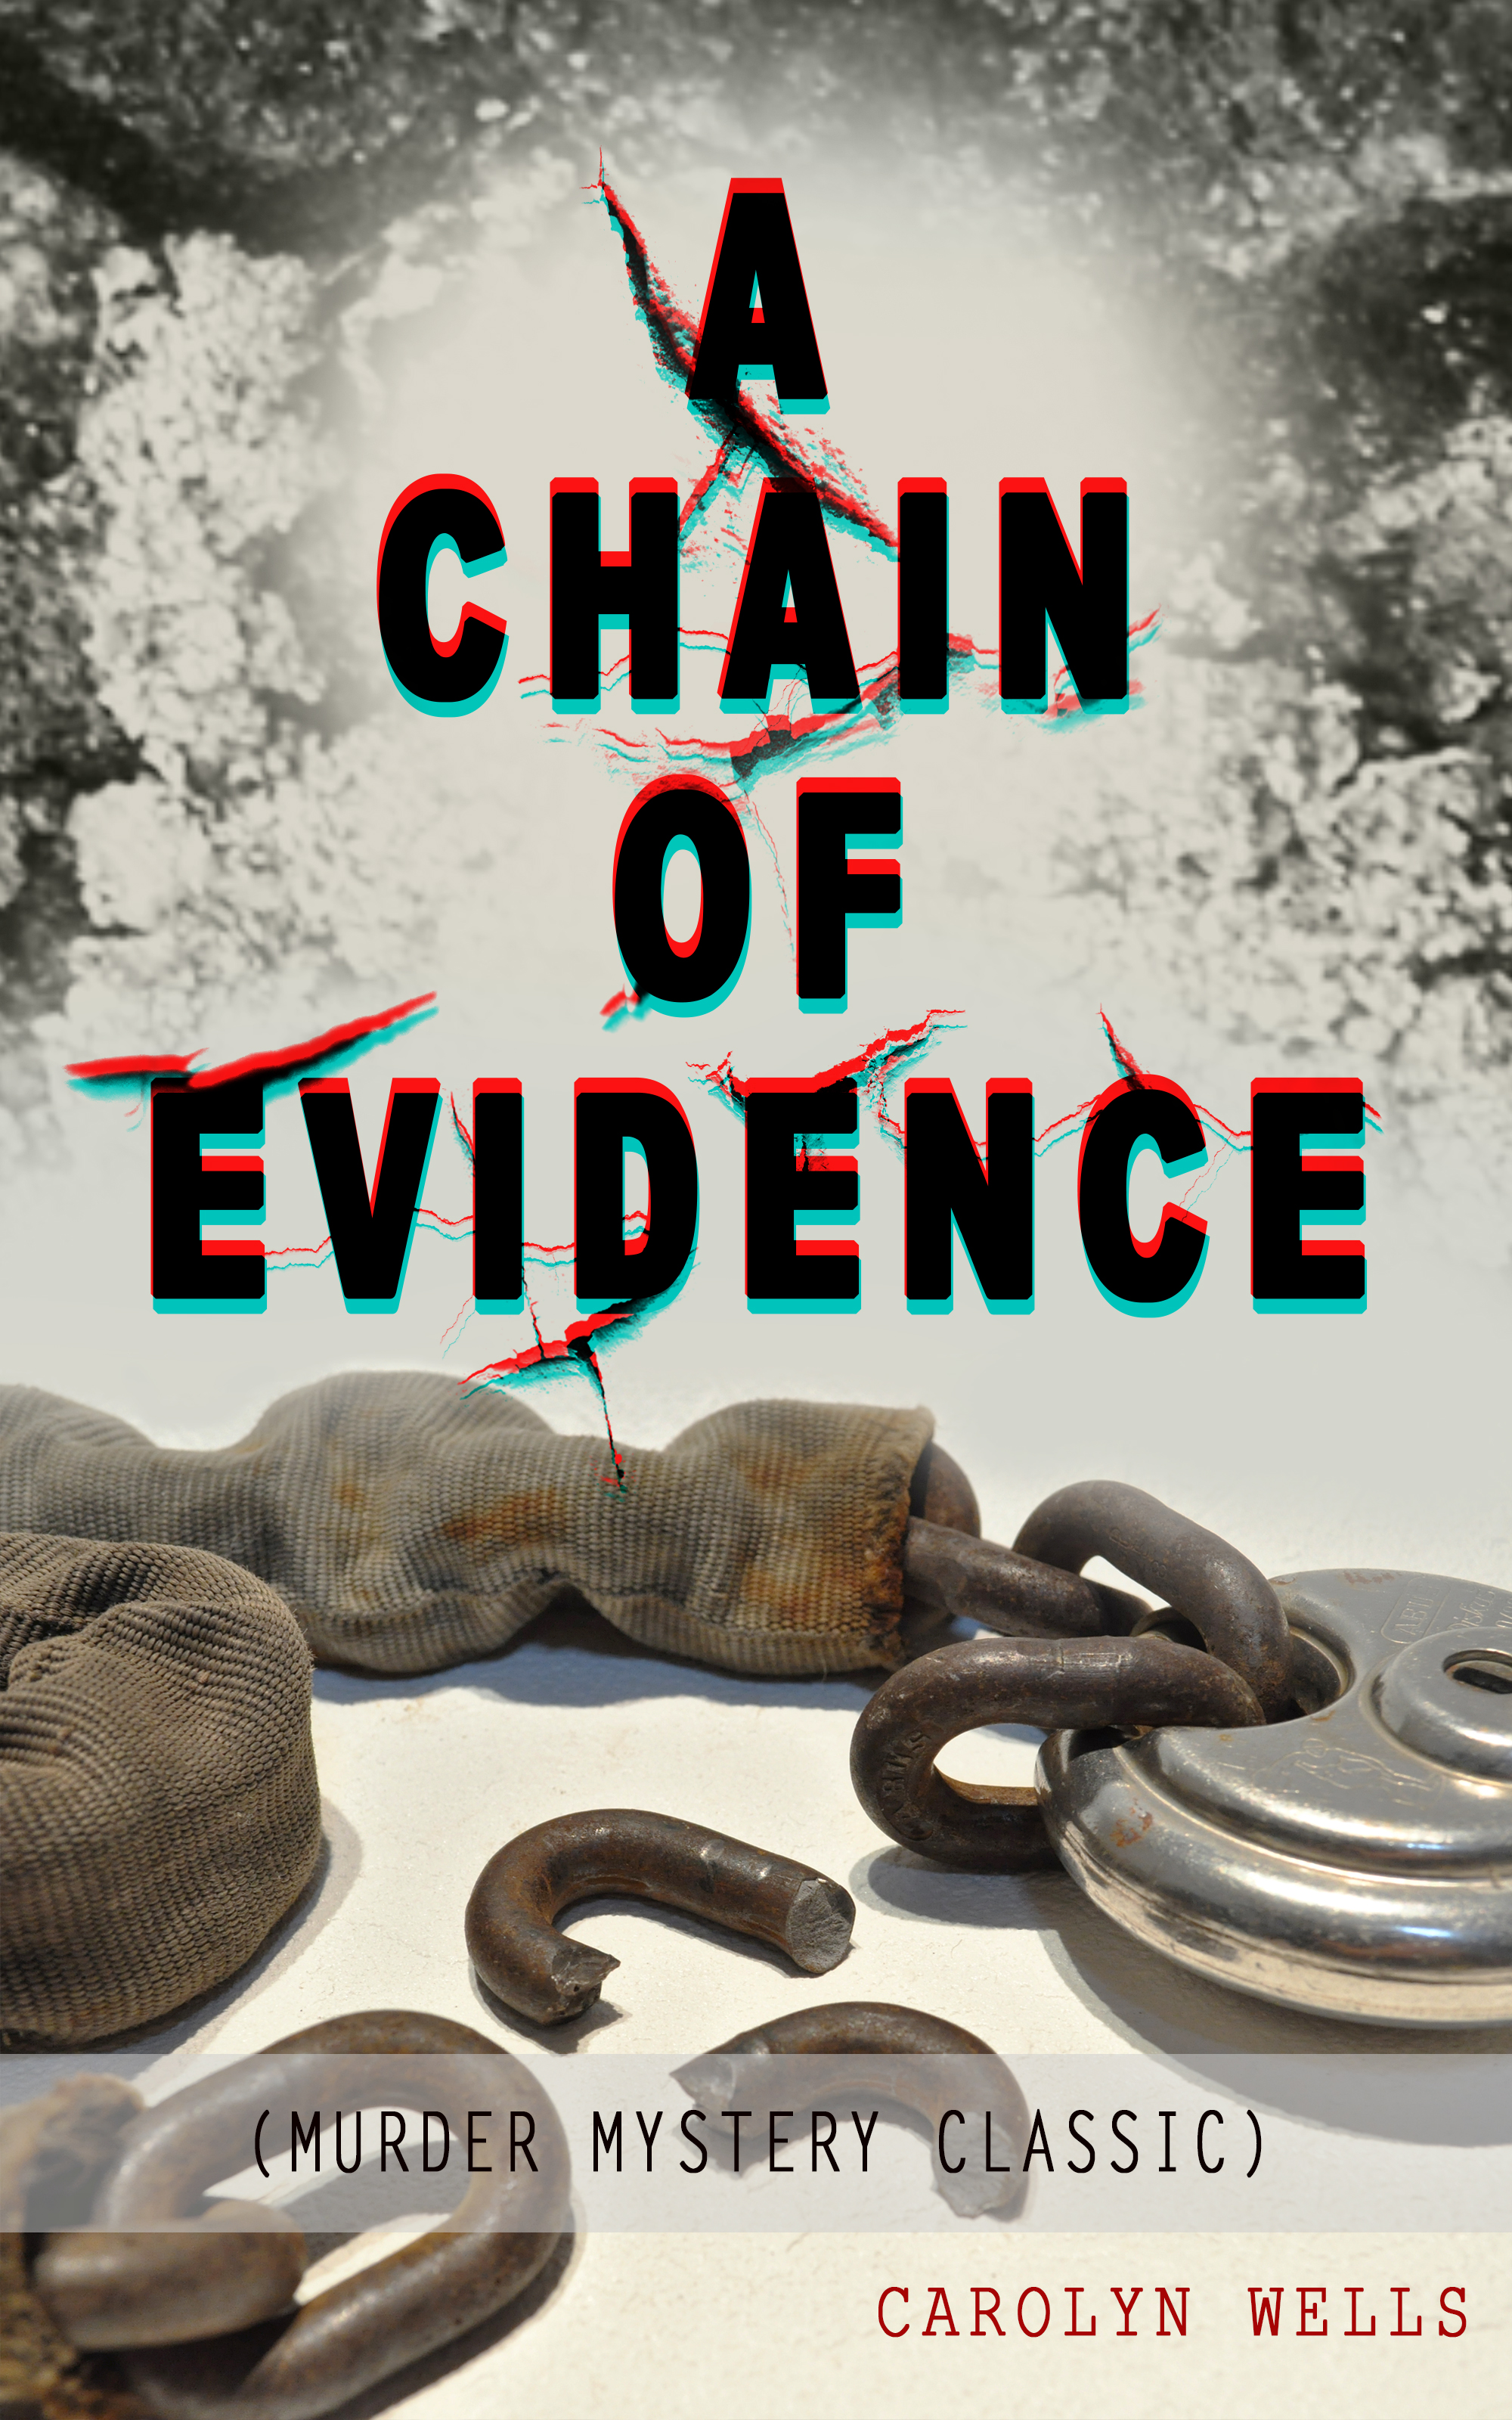 Carolyn Wells A CHAIN OF EVIDENCE (Murder Mystery Classic) carolyn wells the room with the tassels murder mystery classic